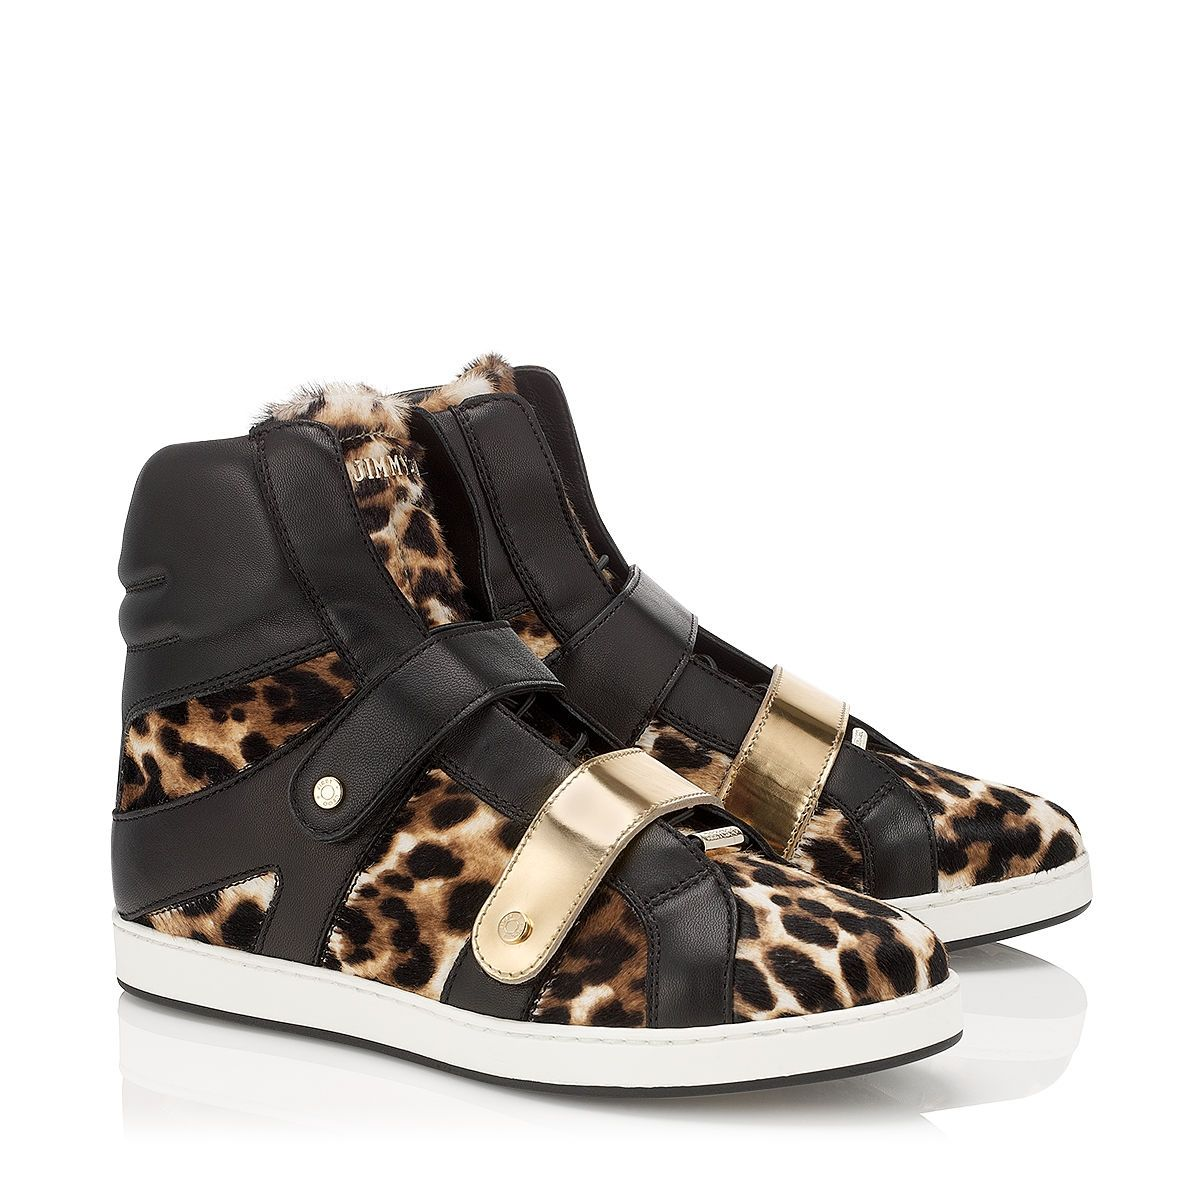 Jimmy Choo - Yazz - 141yazzlnm - Natural, Black and Gold Nappa and Mirror  Leather